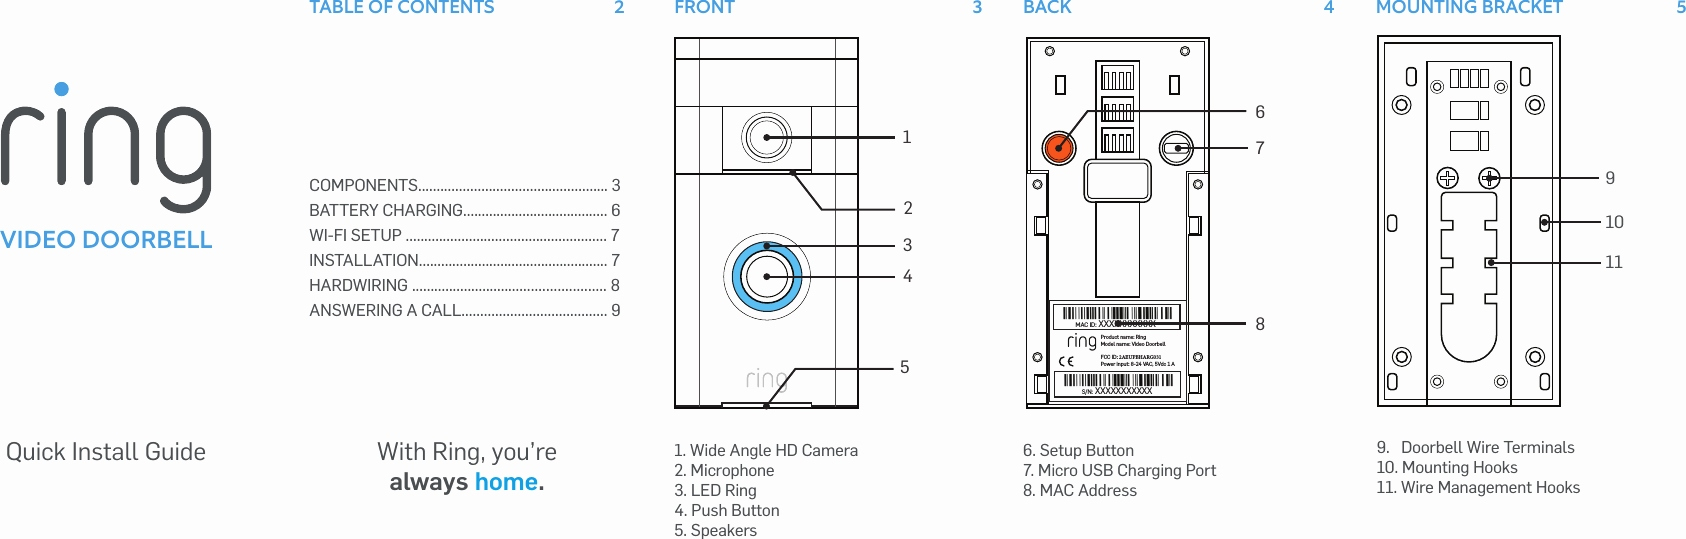 Wiring Diagram For Ring Doorbell Sample Trail King Trailer Download Full Size Of Nutone